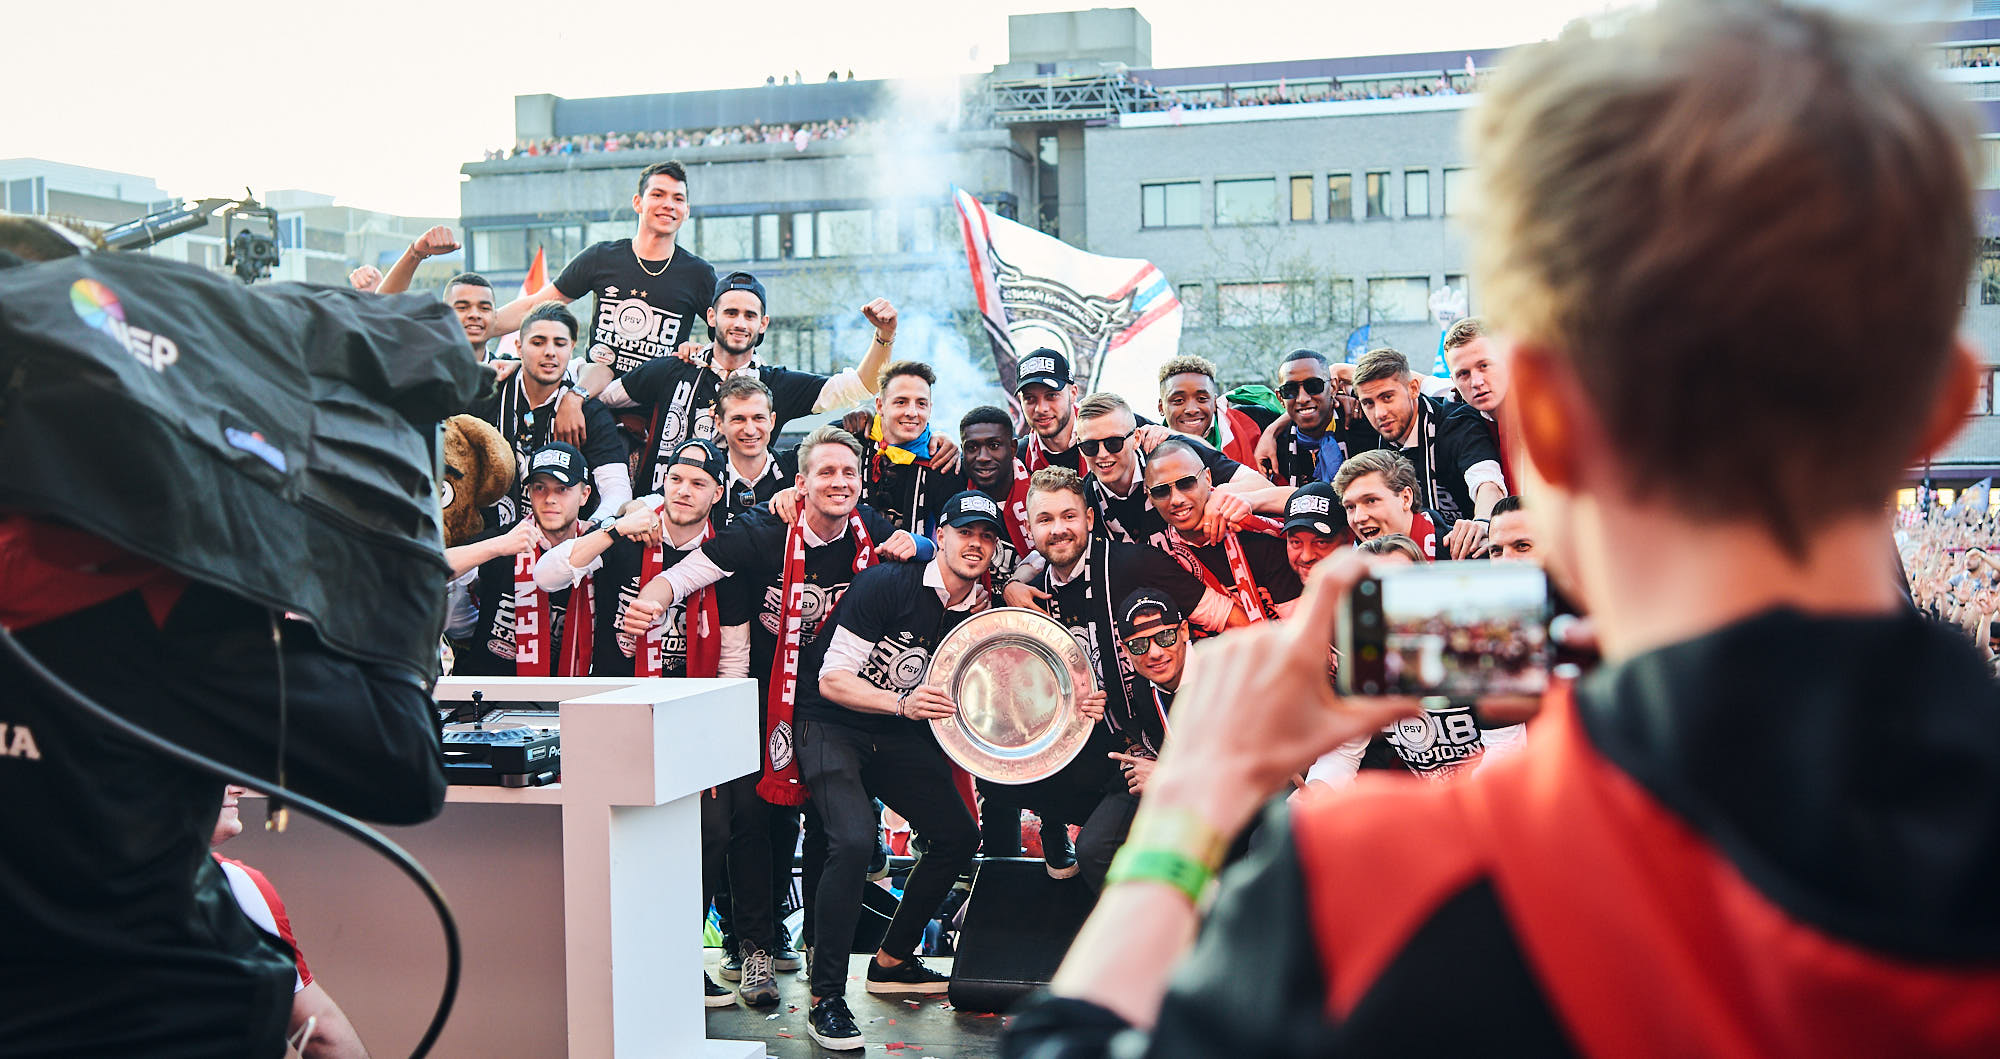 PSV Eindhoven football players make a group photo